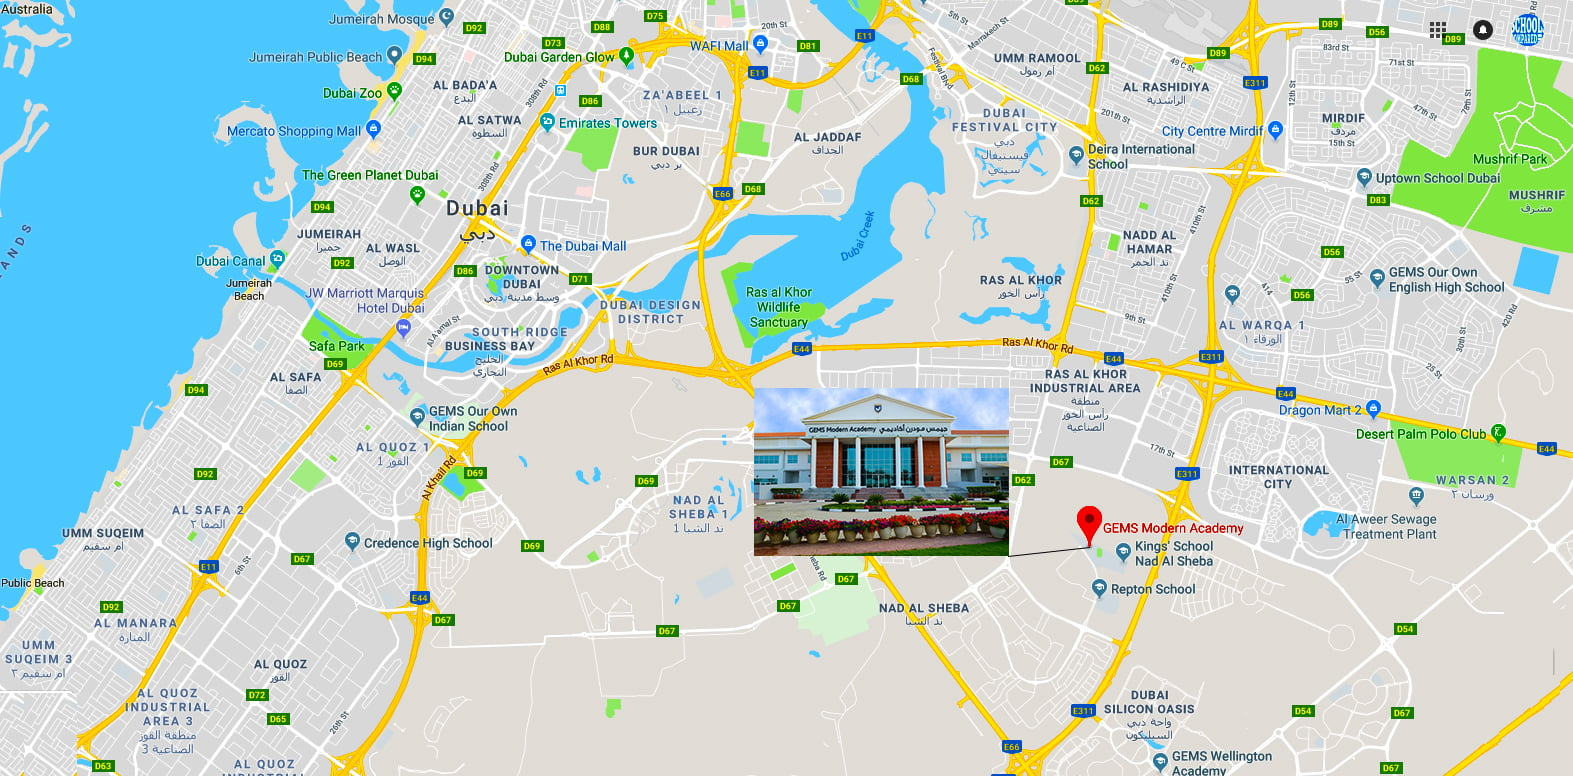 Map showing the location of GEMS Modern Academy in Dubai